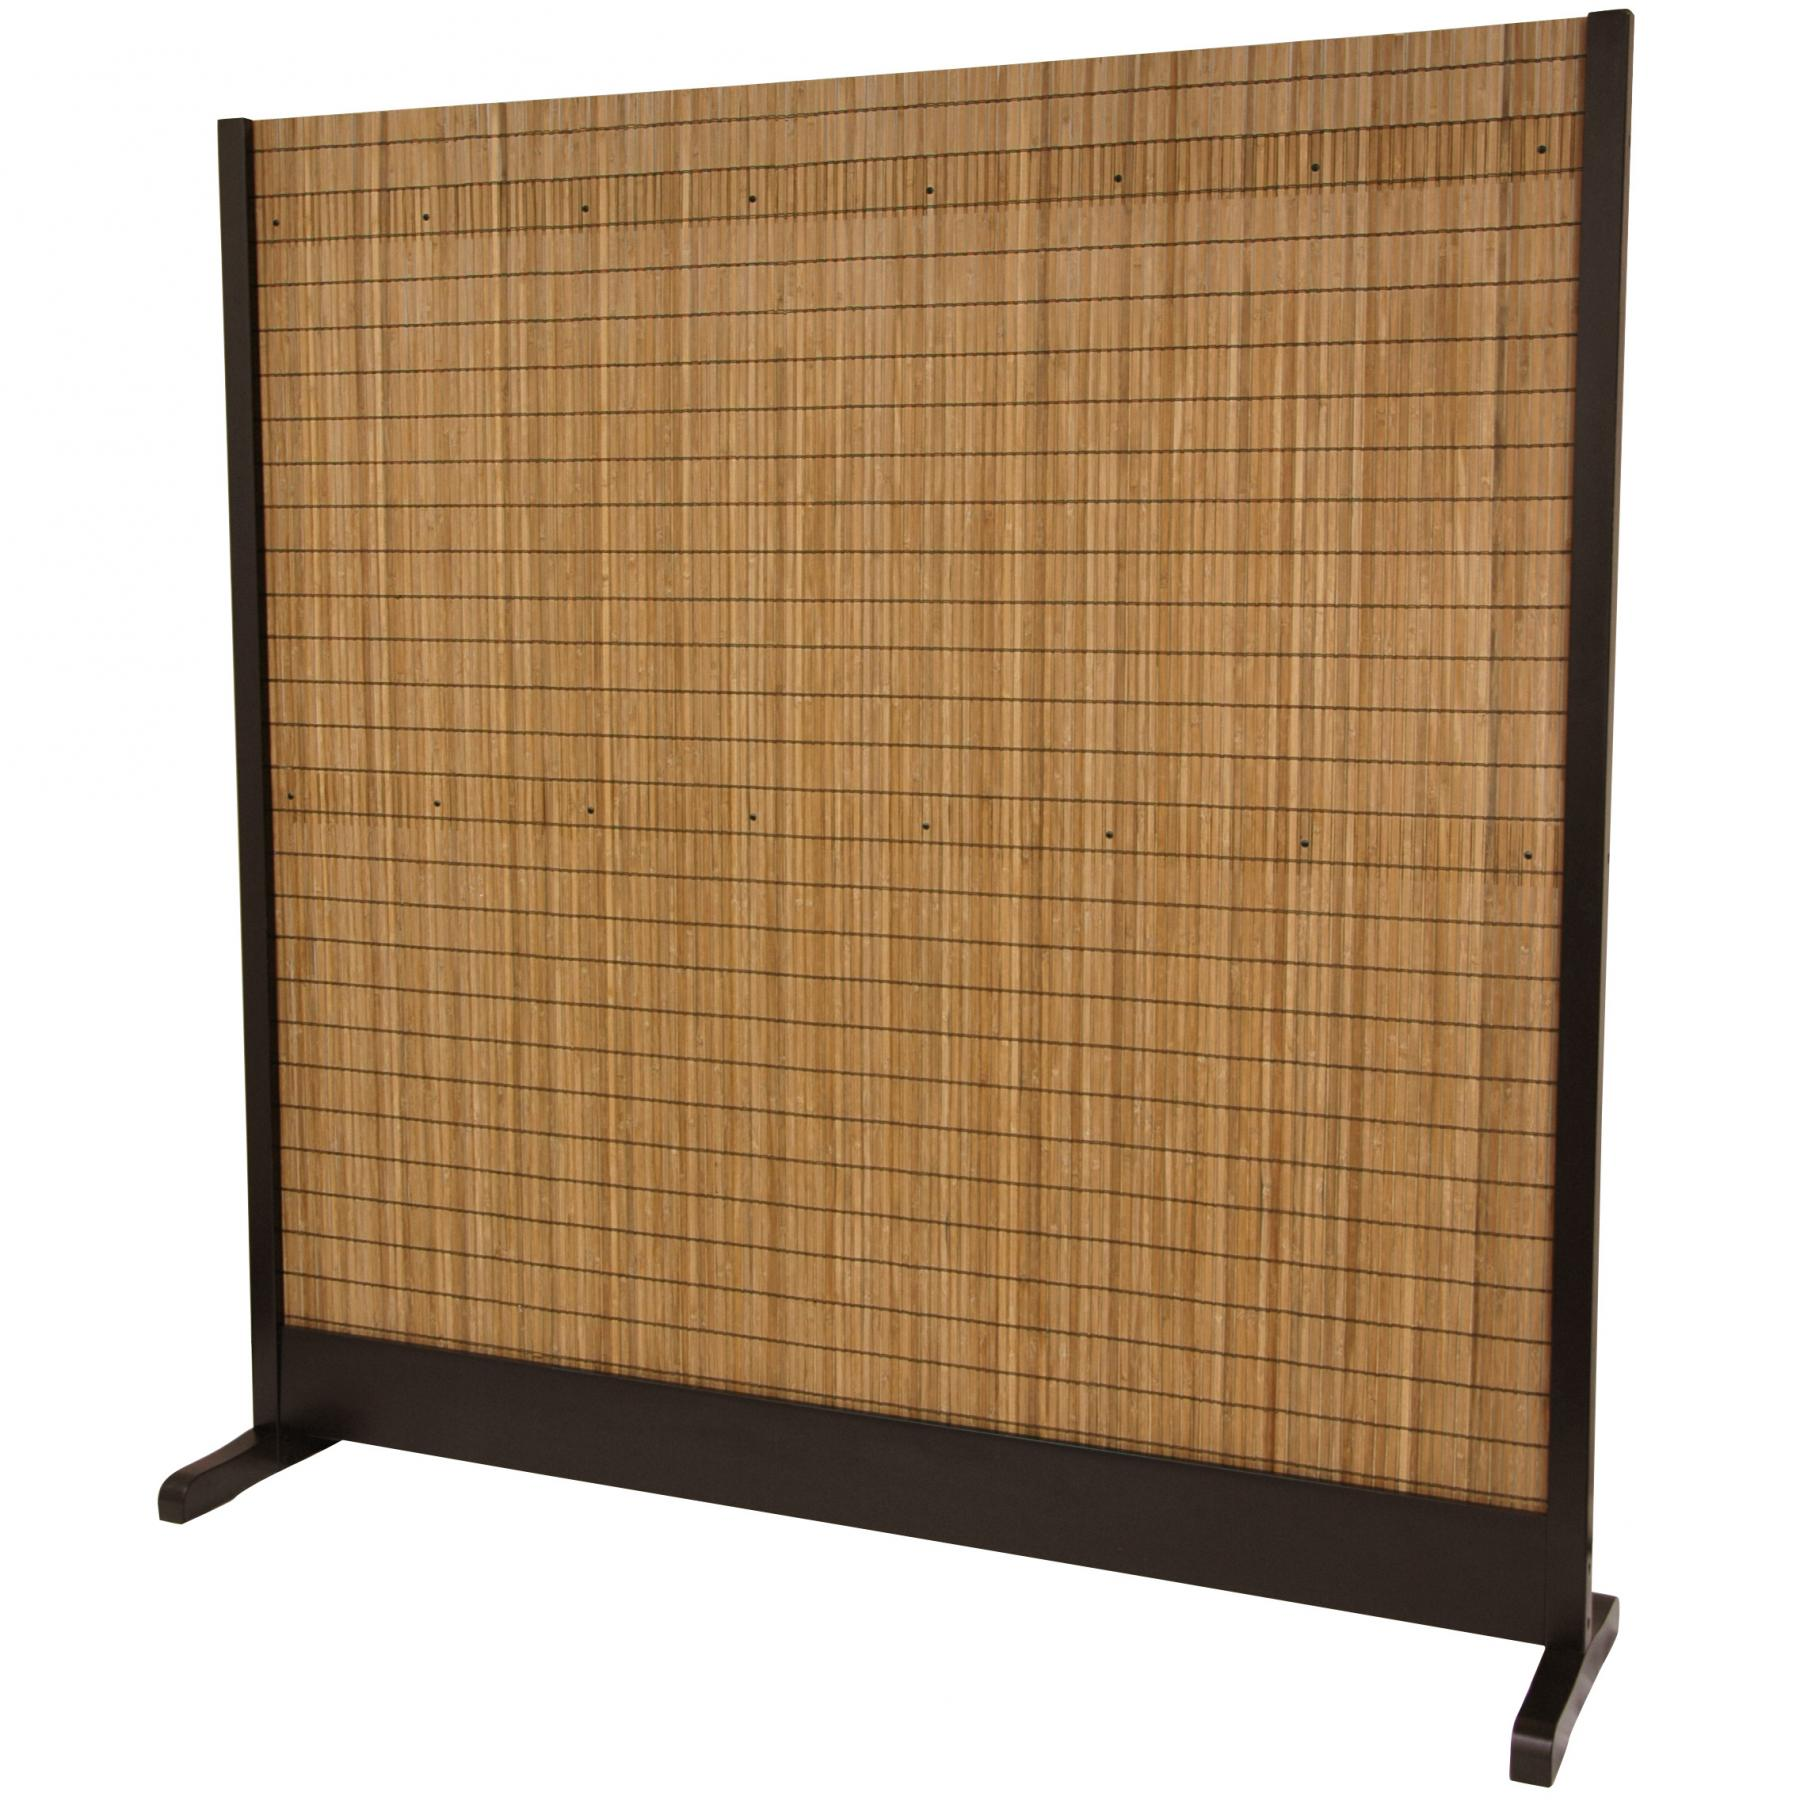 6 Ft Tall Take Room Divider Walnut RoomDividerscom